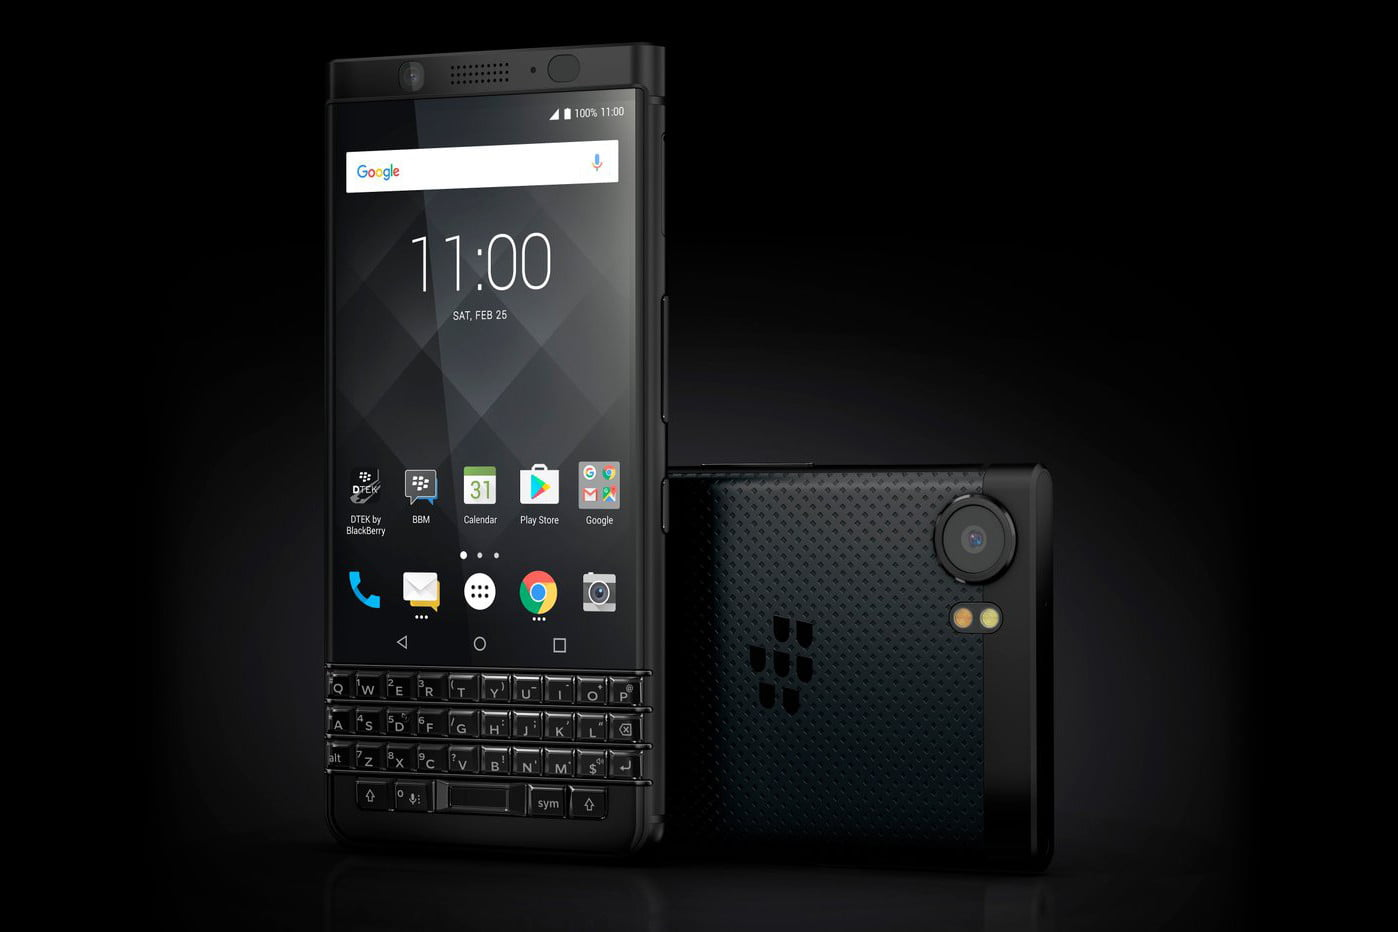 blackberry-keyone-limited-black-1398x932.jpg